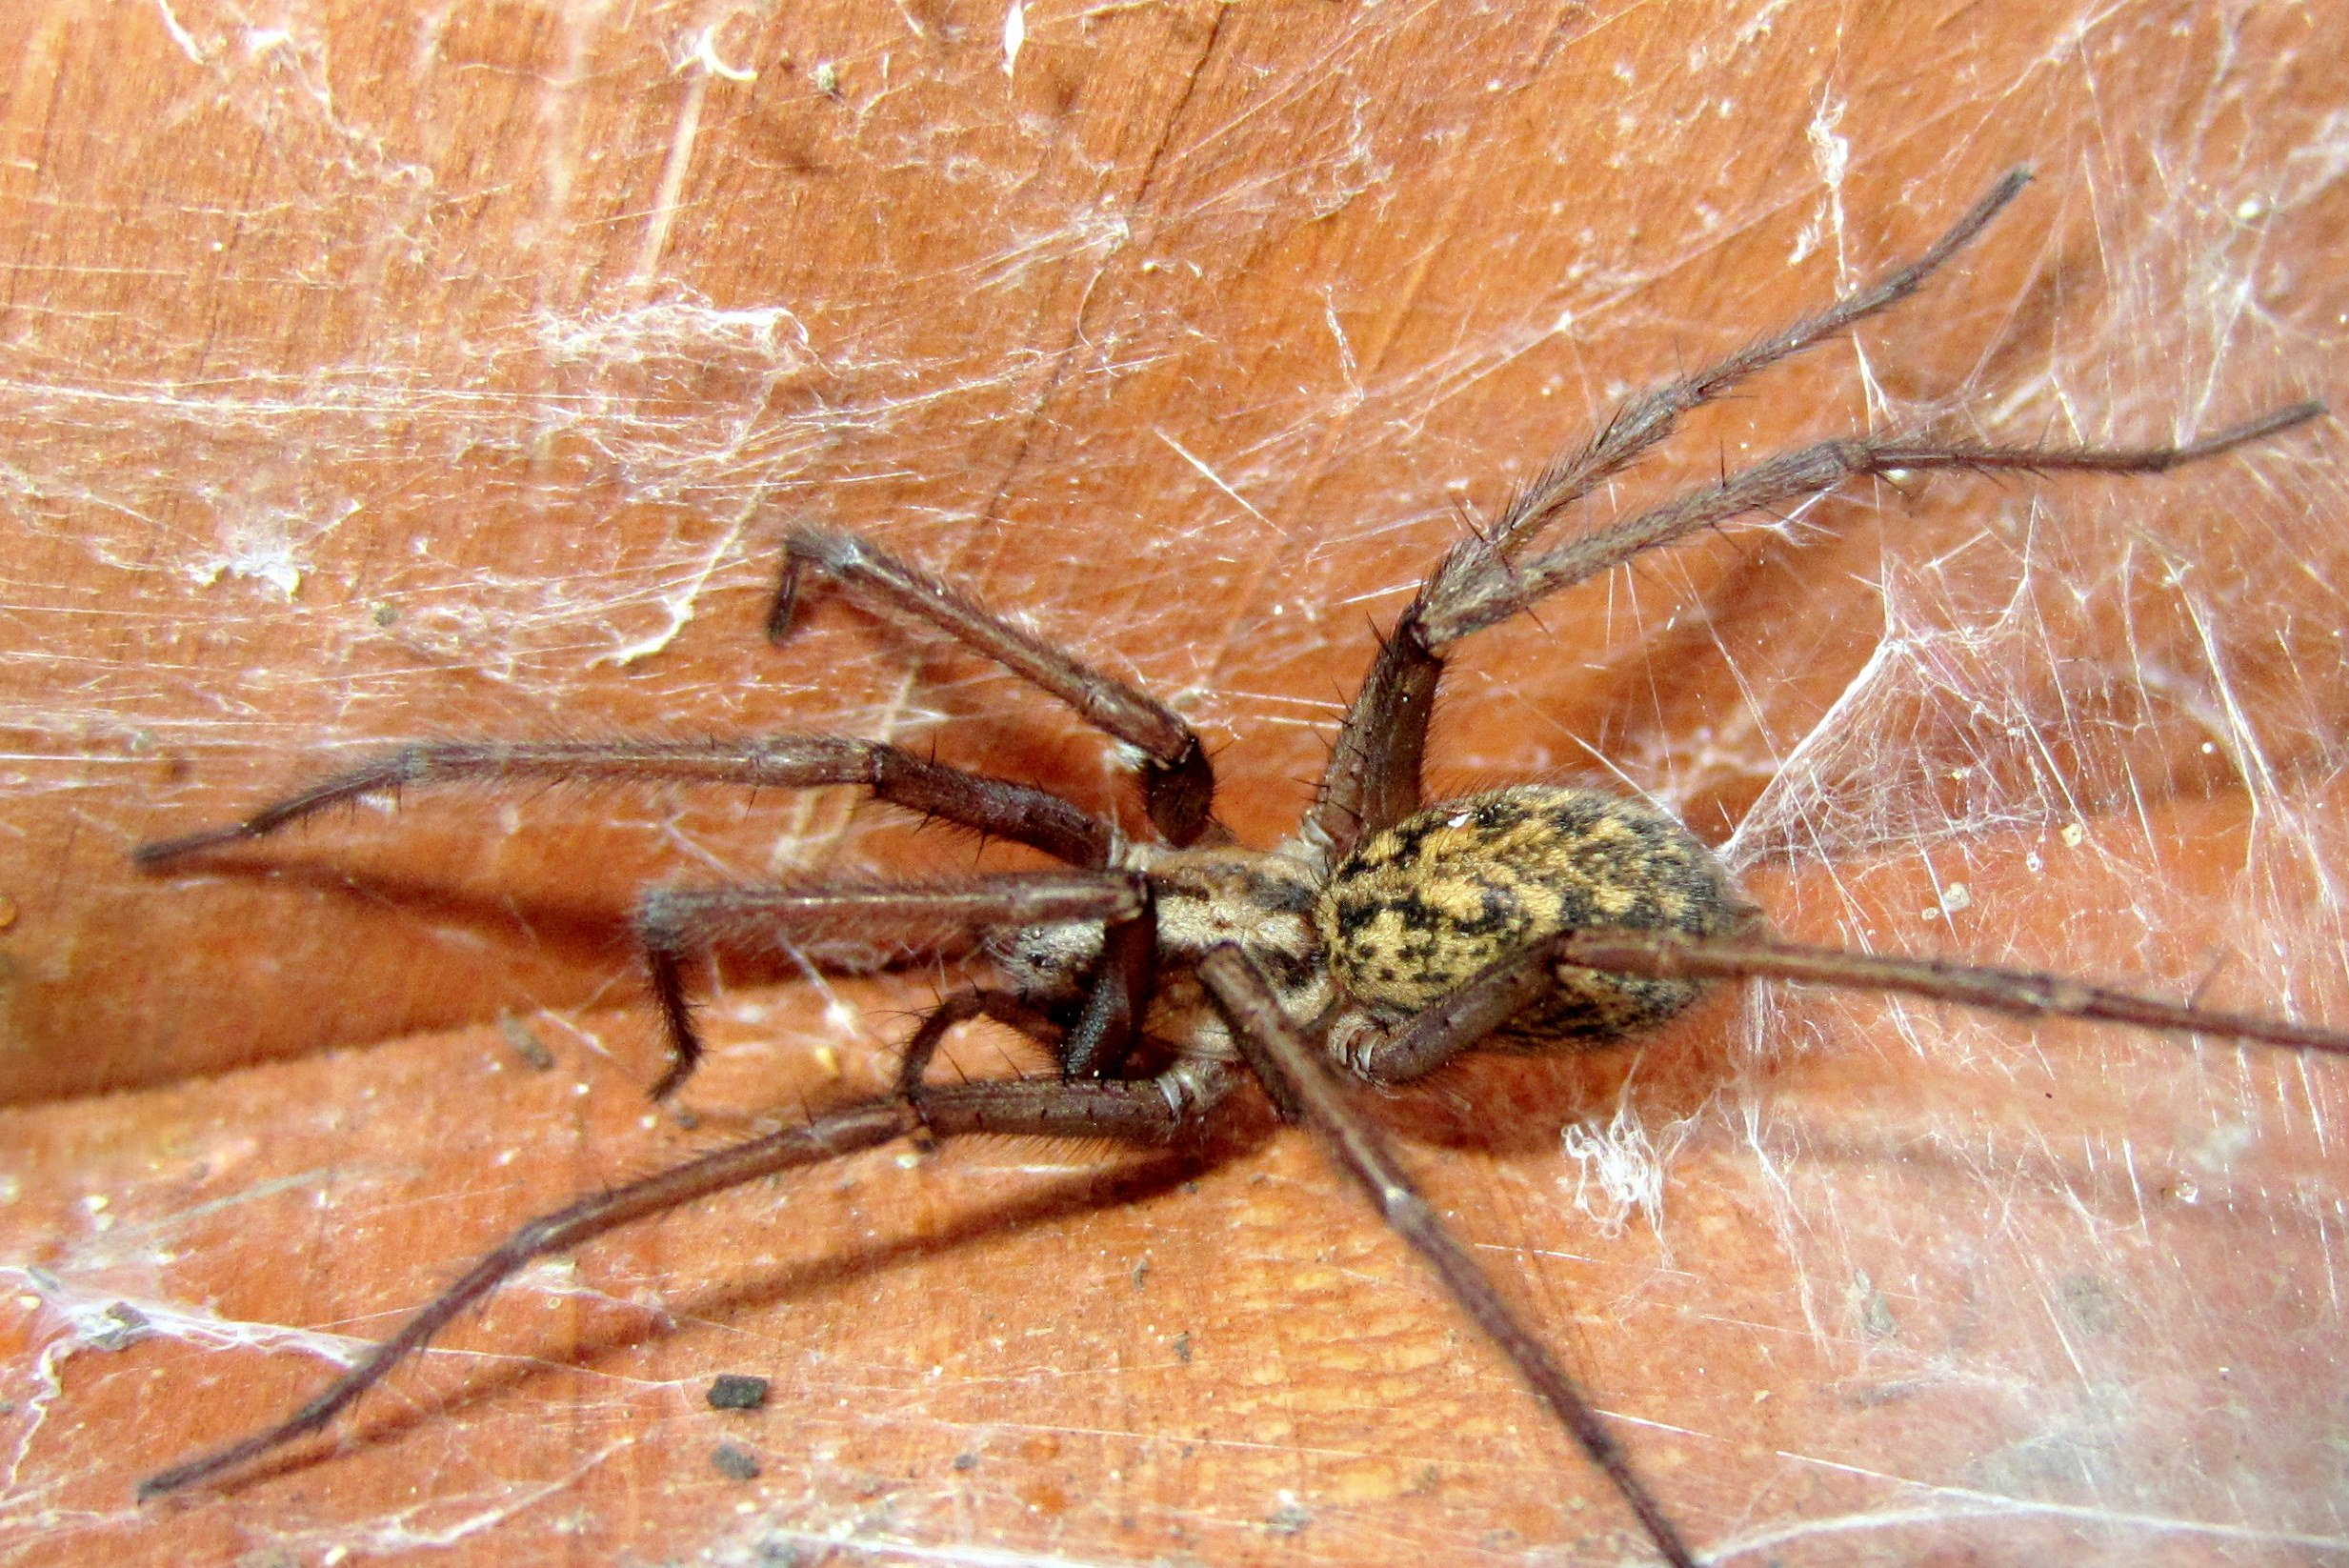 How To Identify Hobo Spiders And Eliminate Them In Your Home